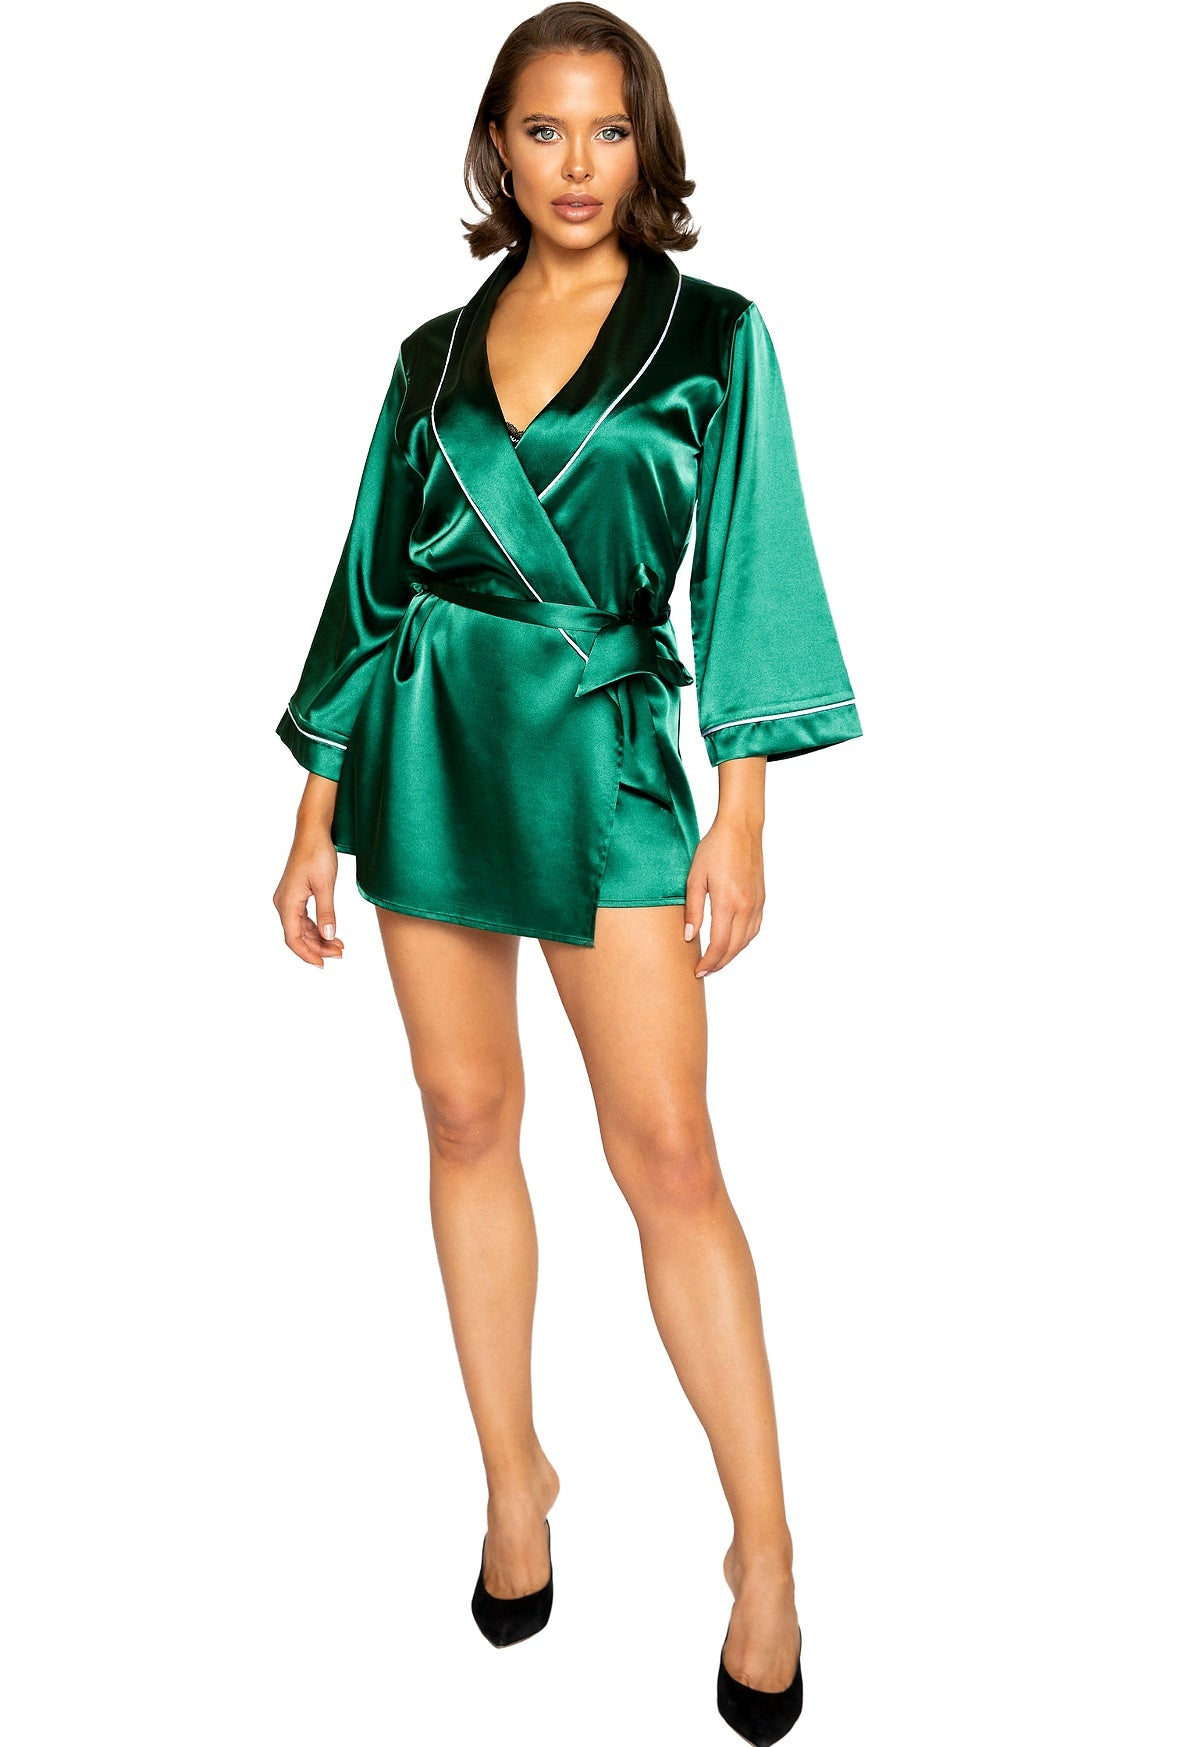 Satin green robe